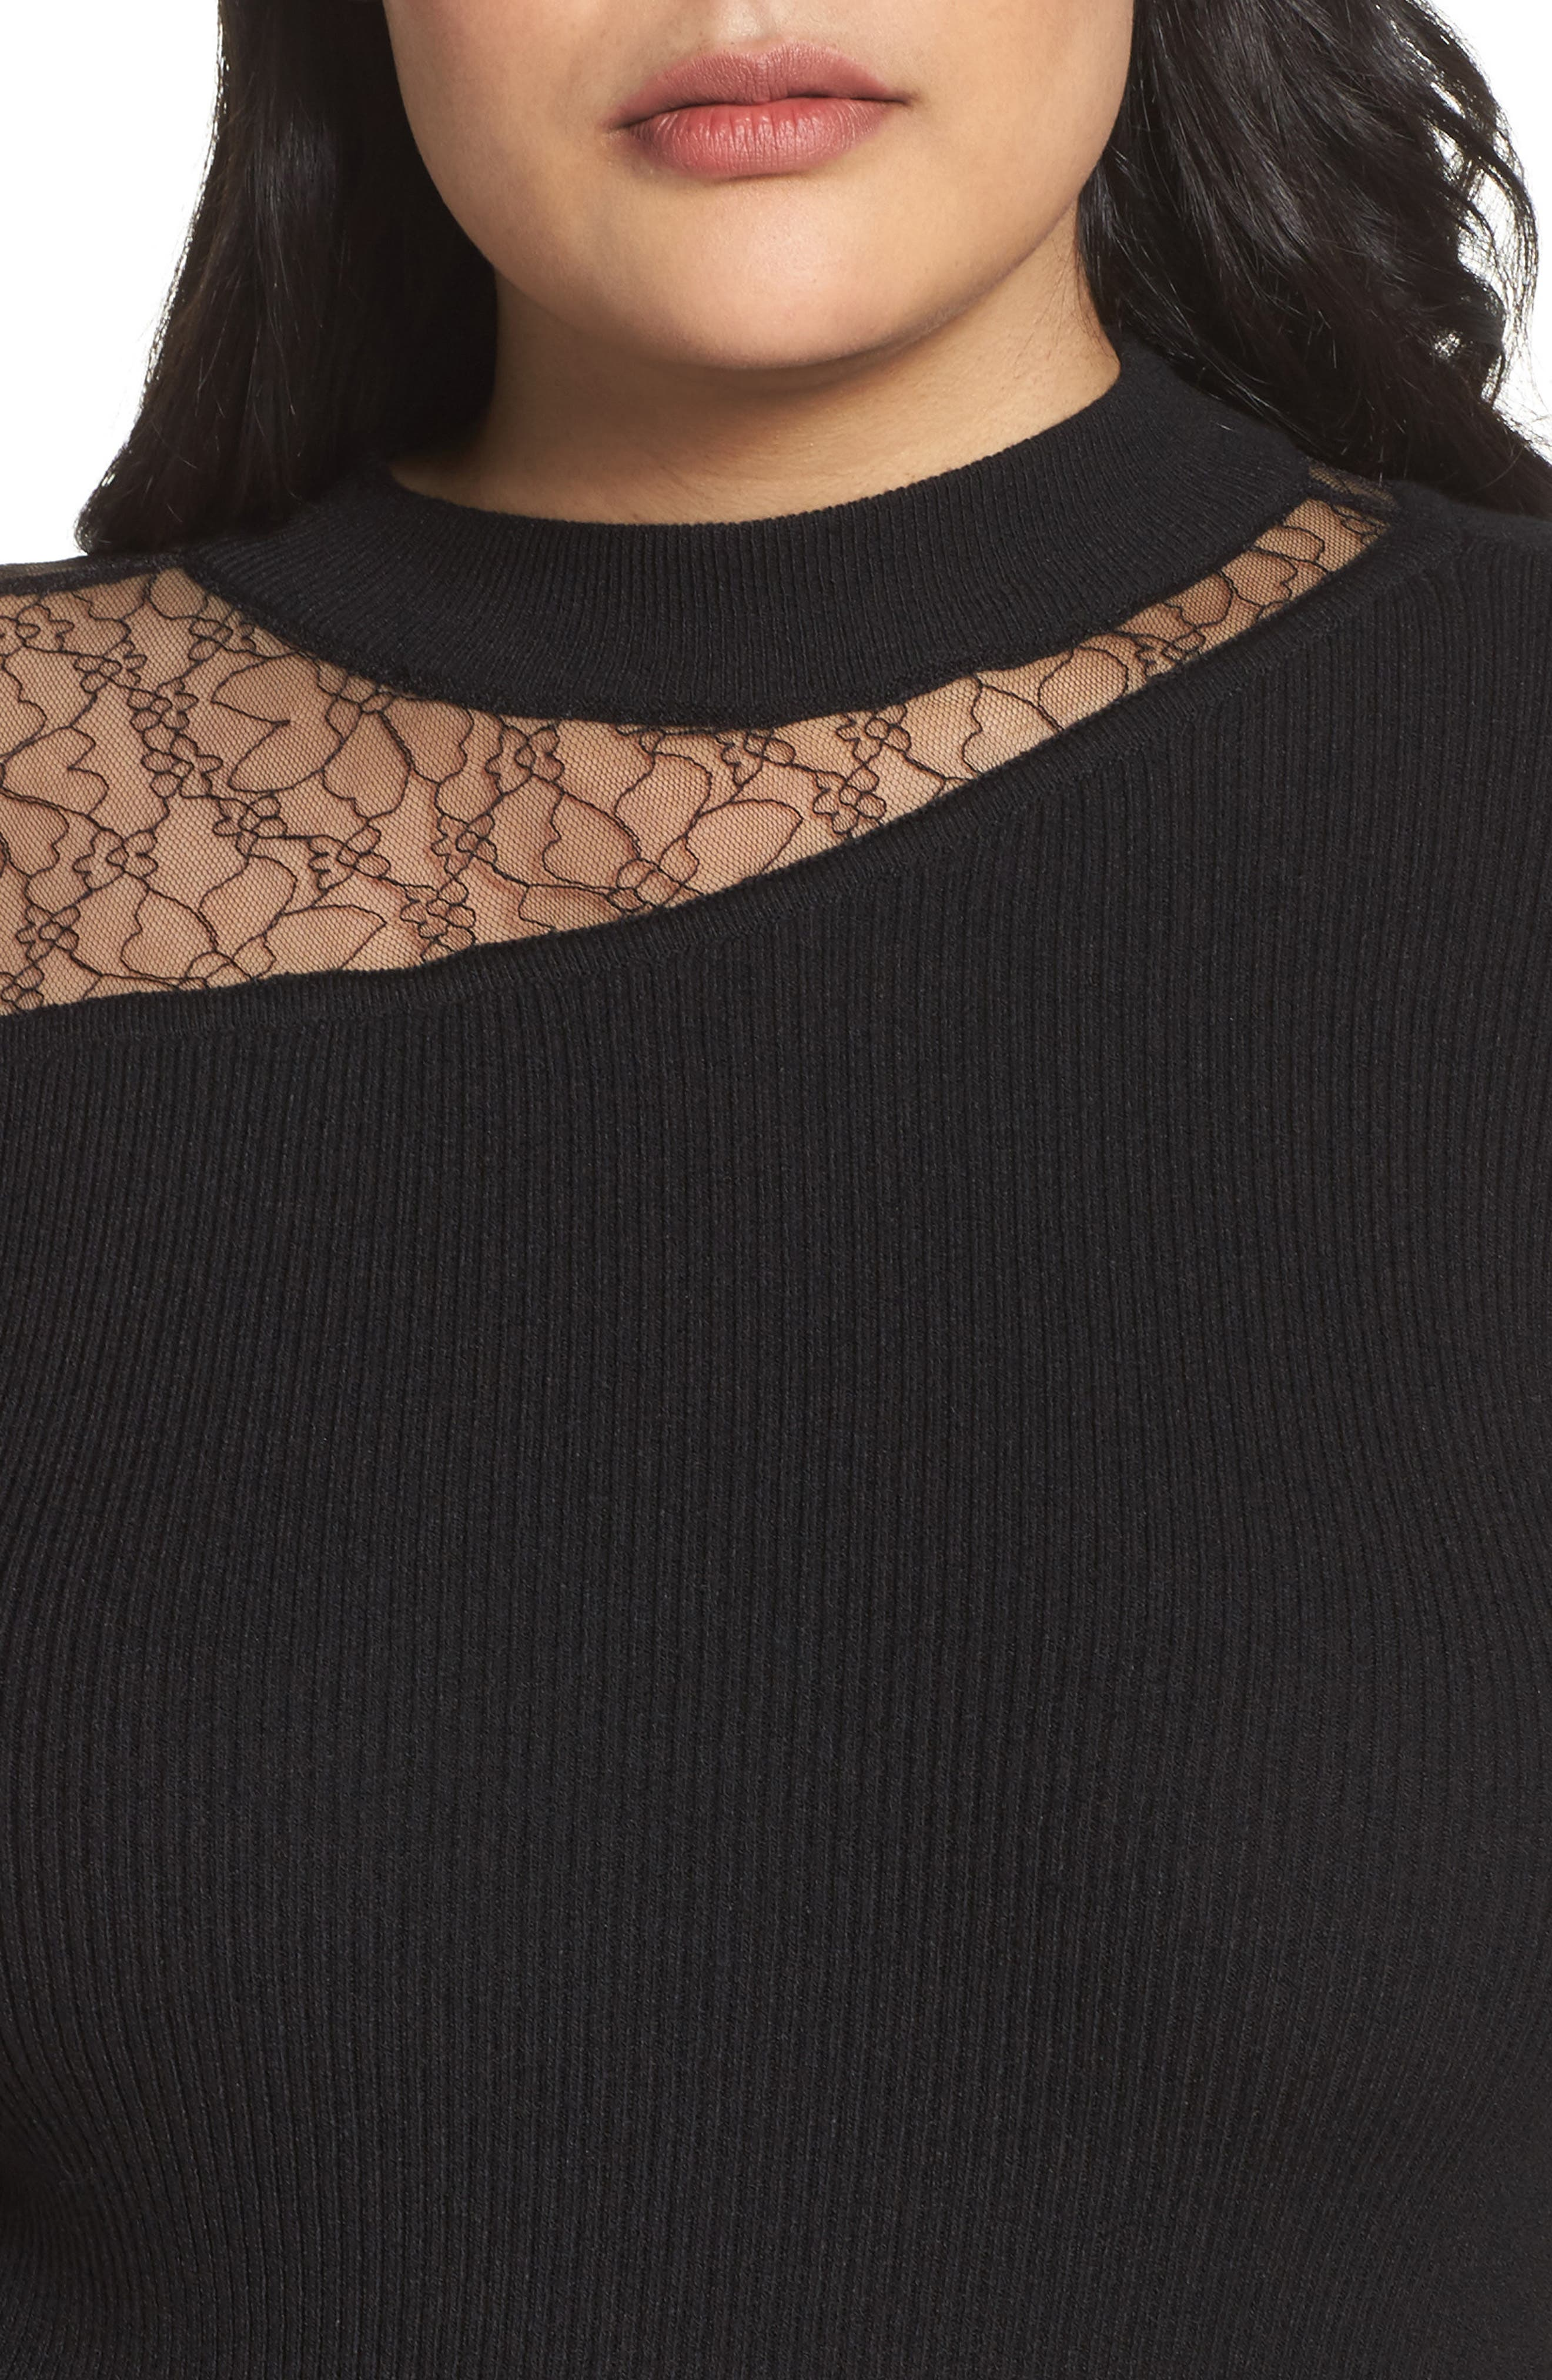 Lace Inset Ribbed Sweater,                             Alternate thumbnail 4, color,                             001